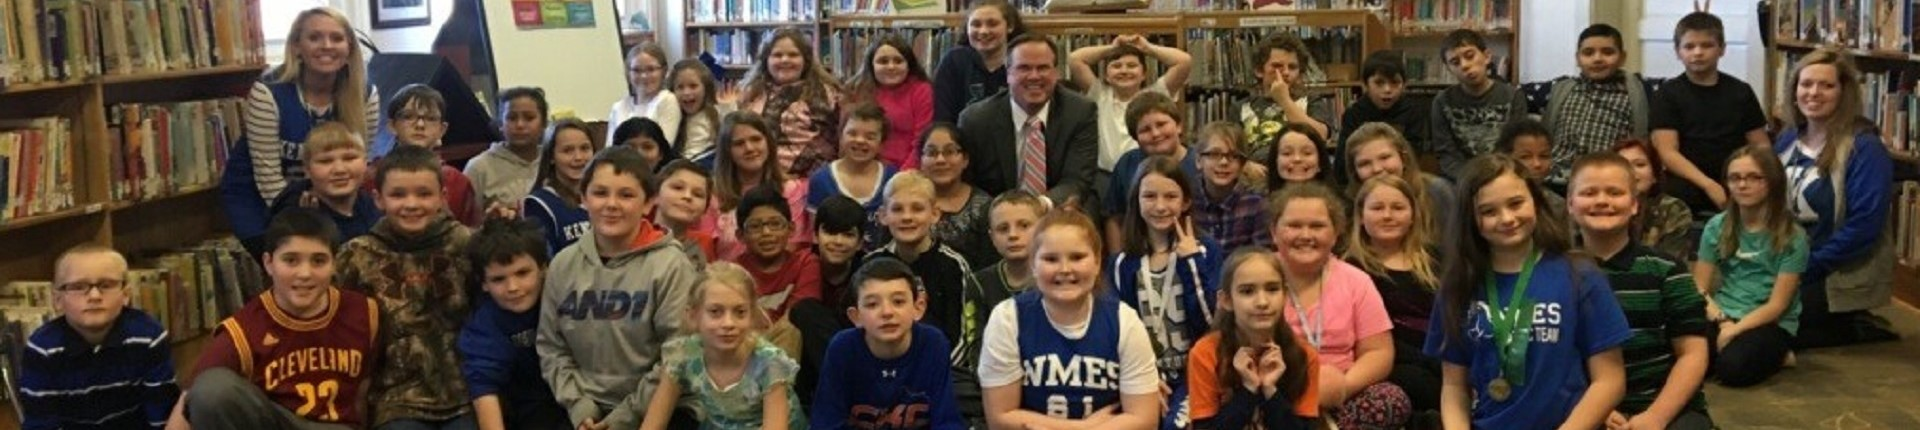 Bill Meck visits NMES for Weather 101